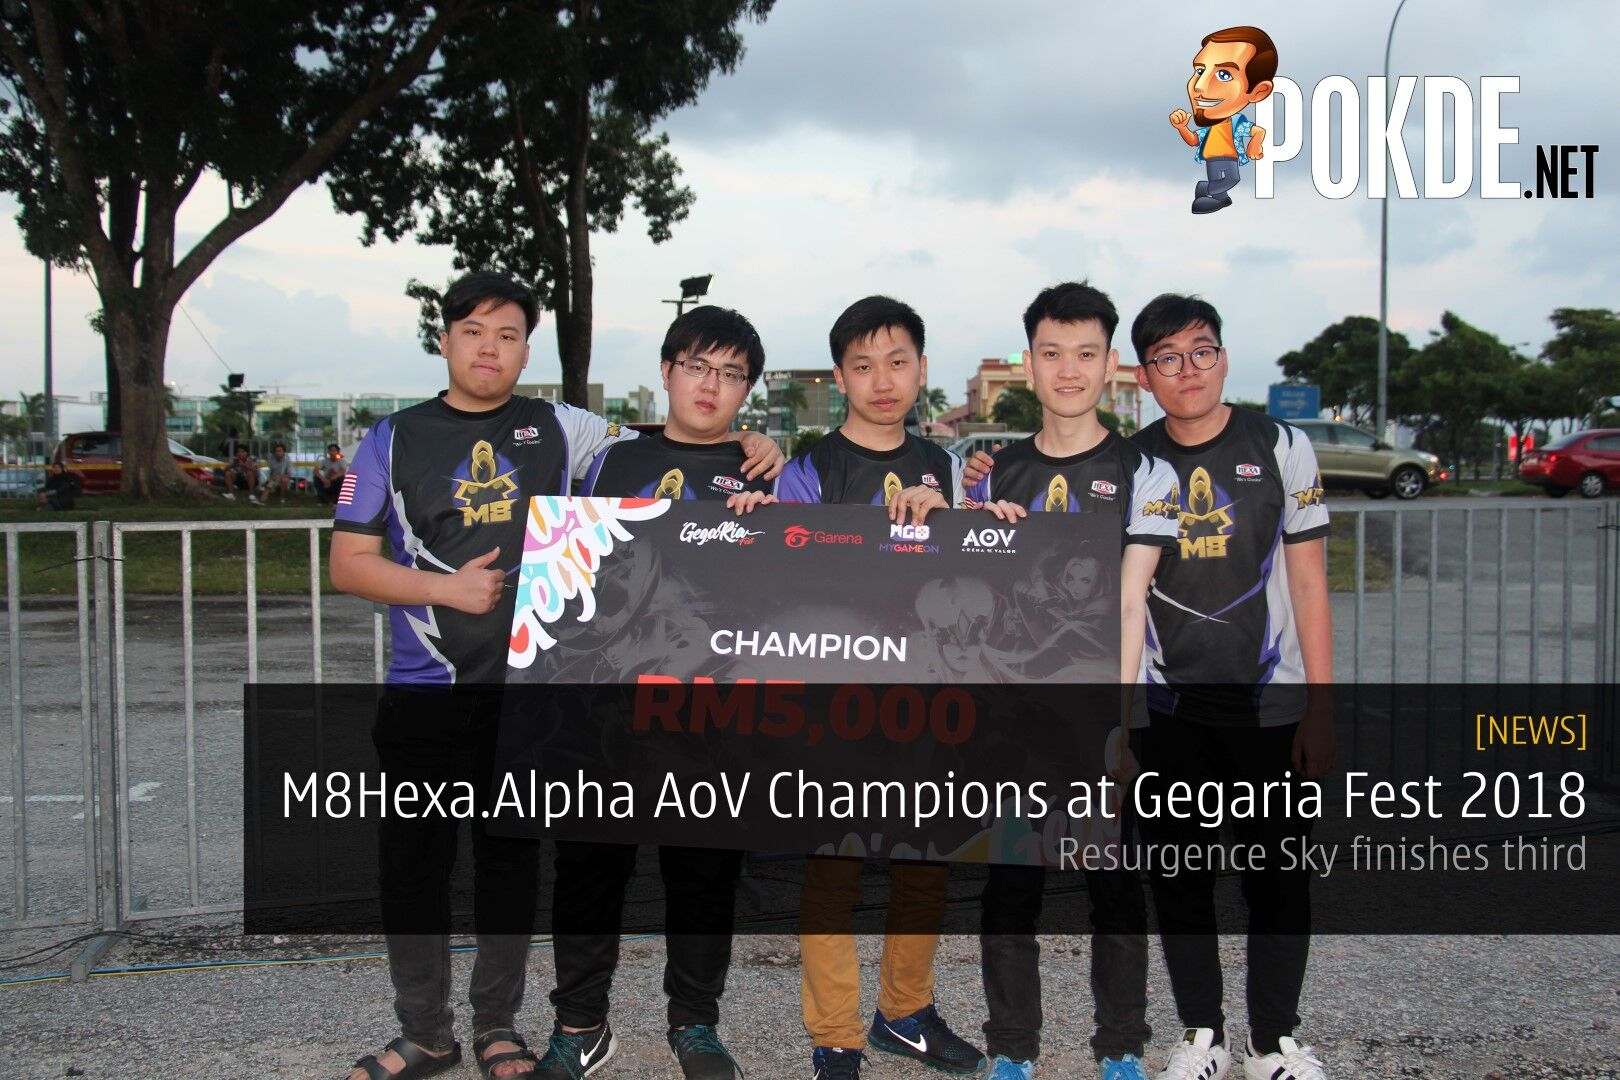 M8Hexa.Alpha AoV Champions at Gegaria Fest 2018 - AOV Valor Cup champions Resurgence Sky finishes third 23